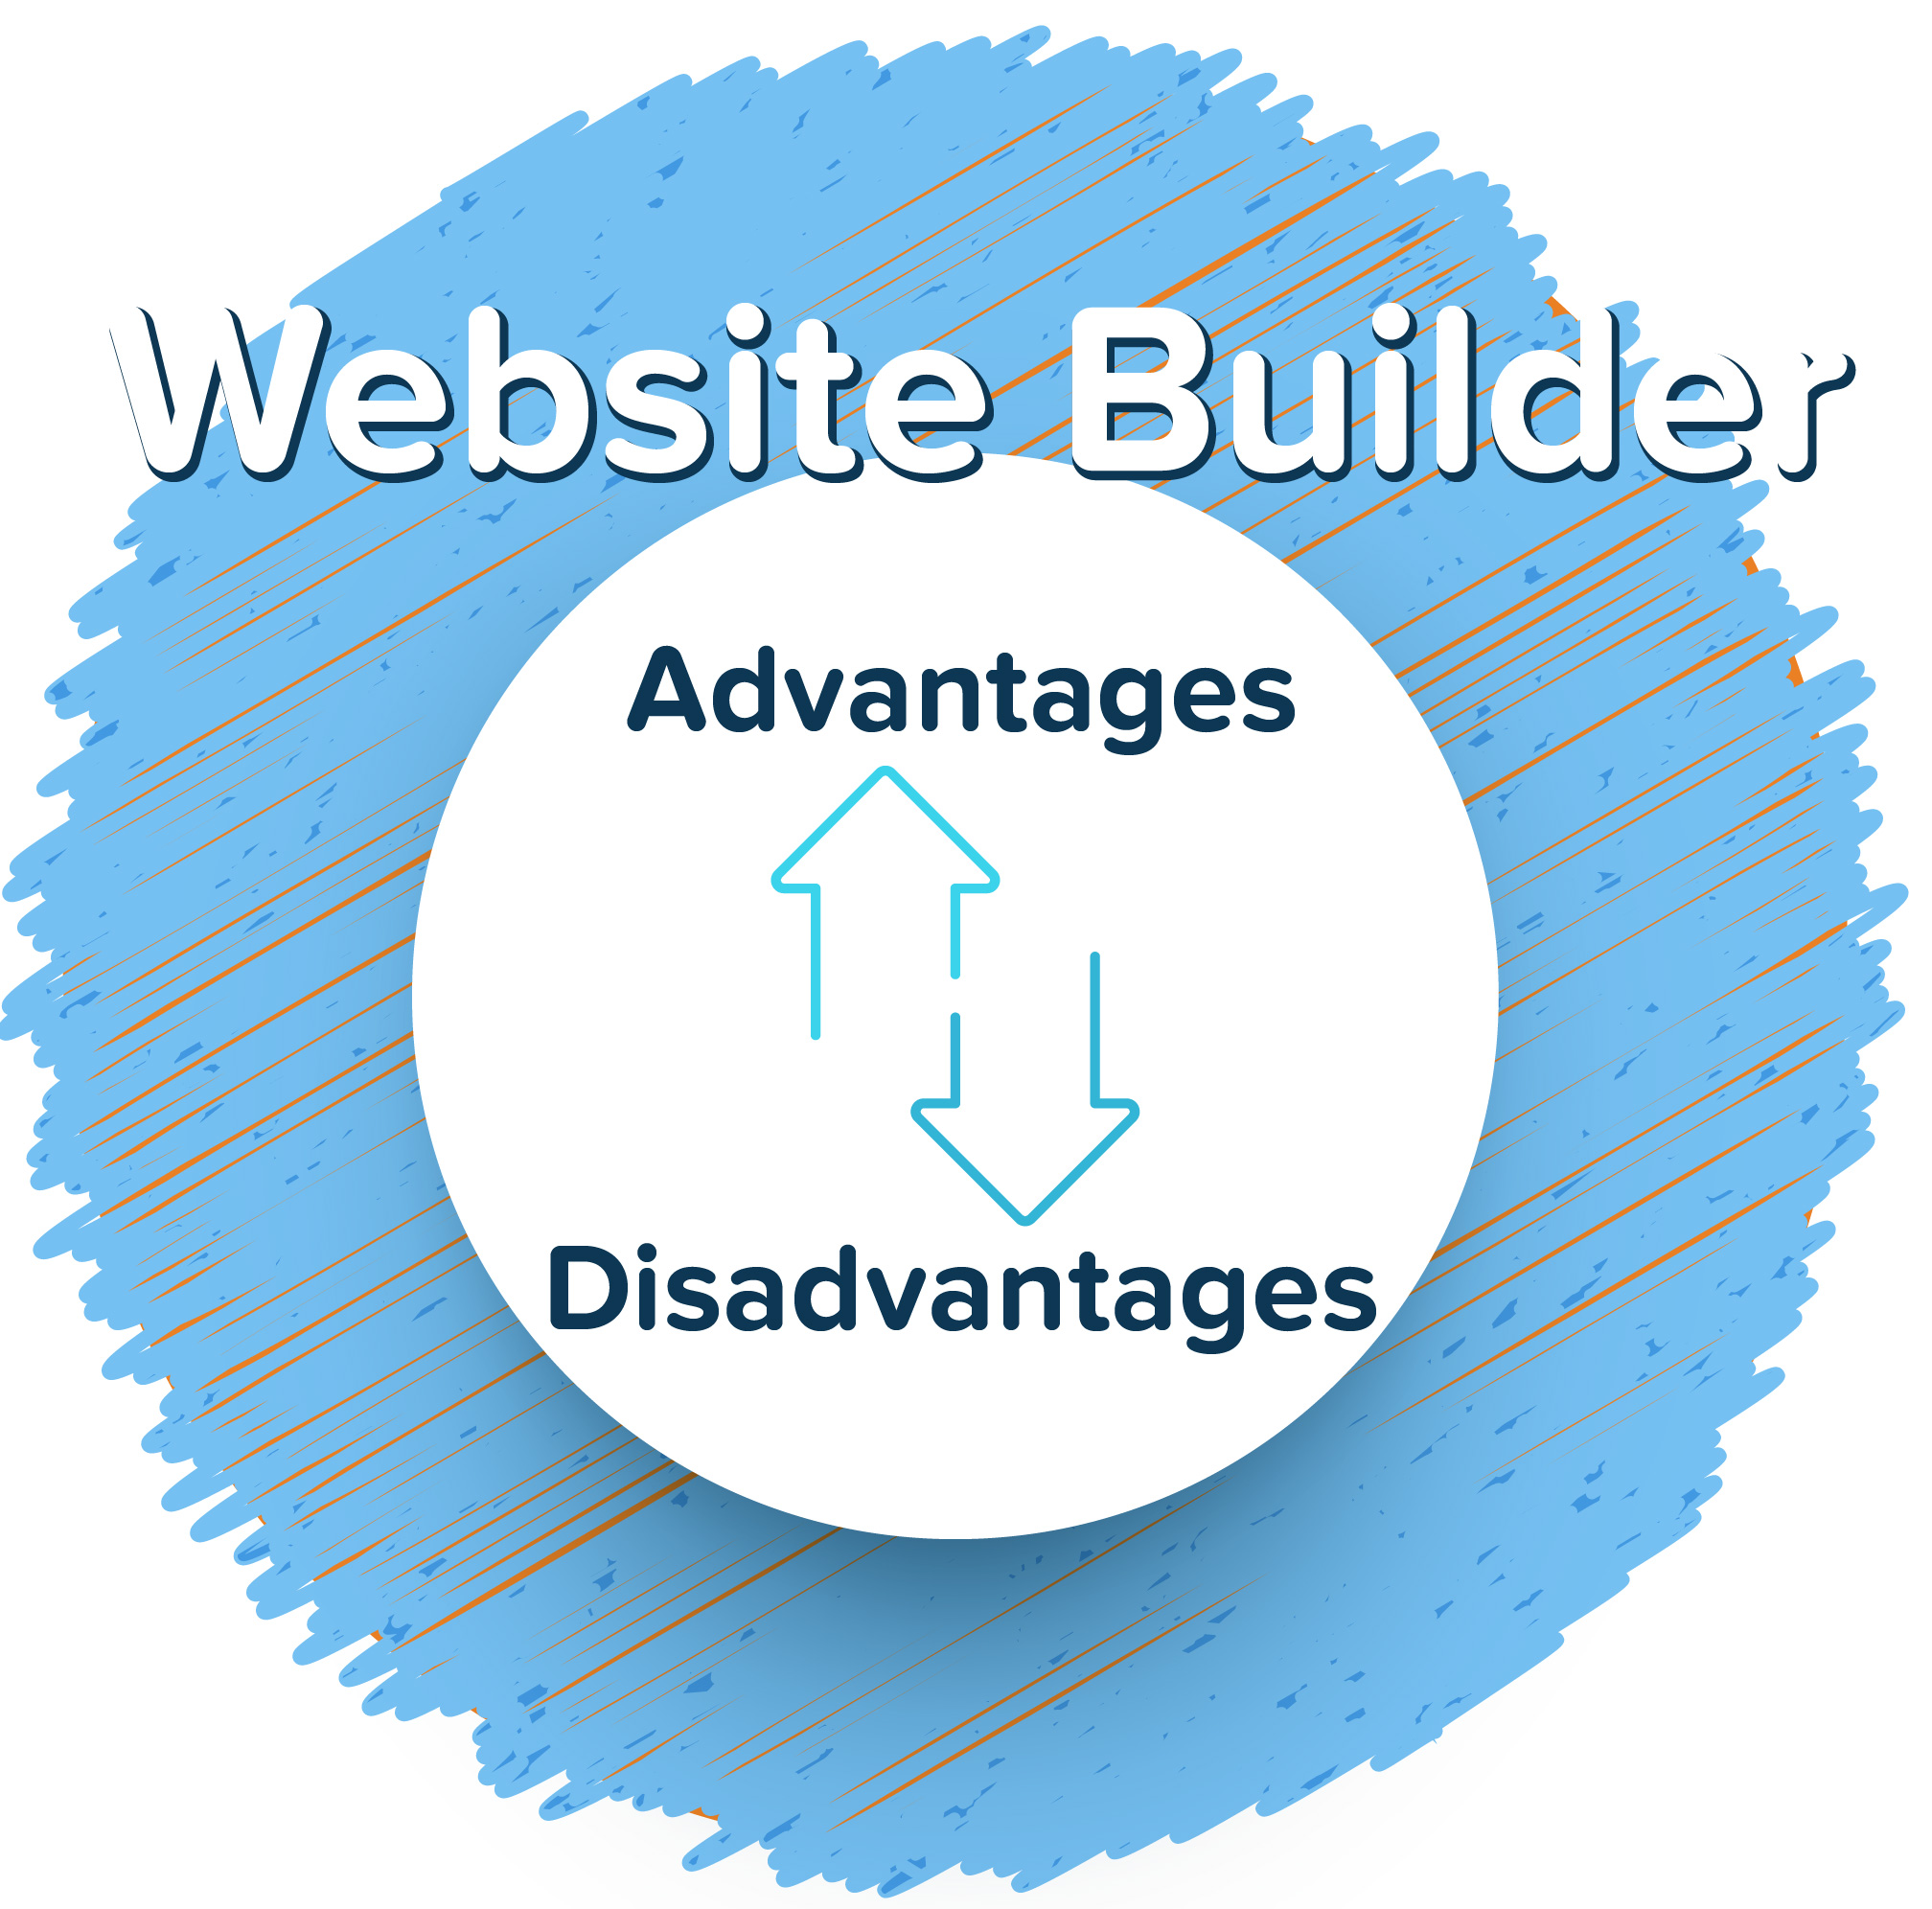 10 Best Website Builders for Small Business (Inside Look